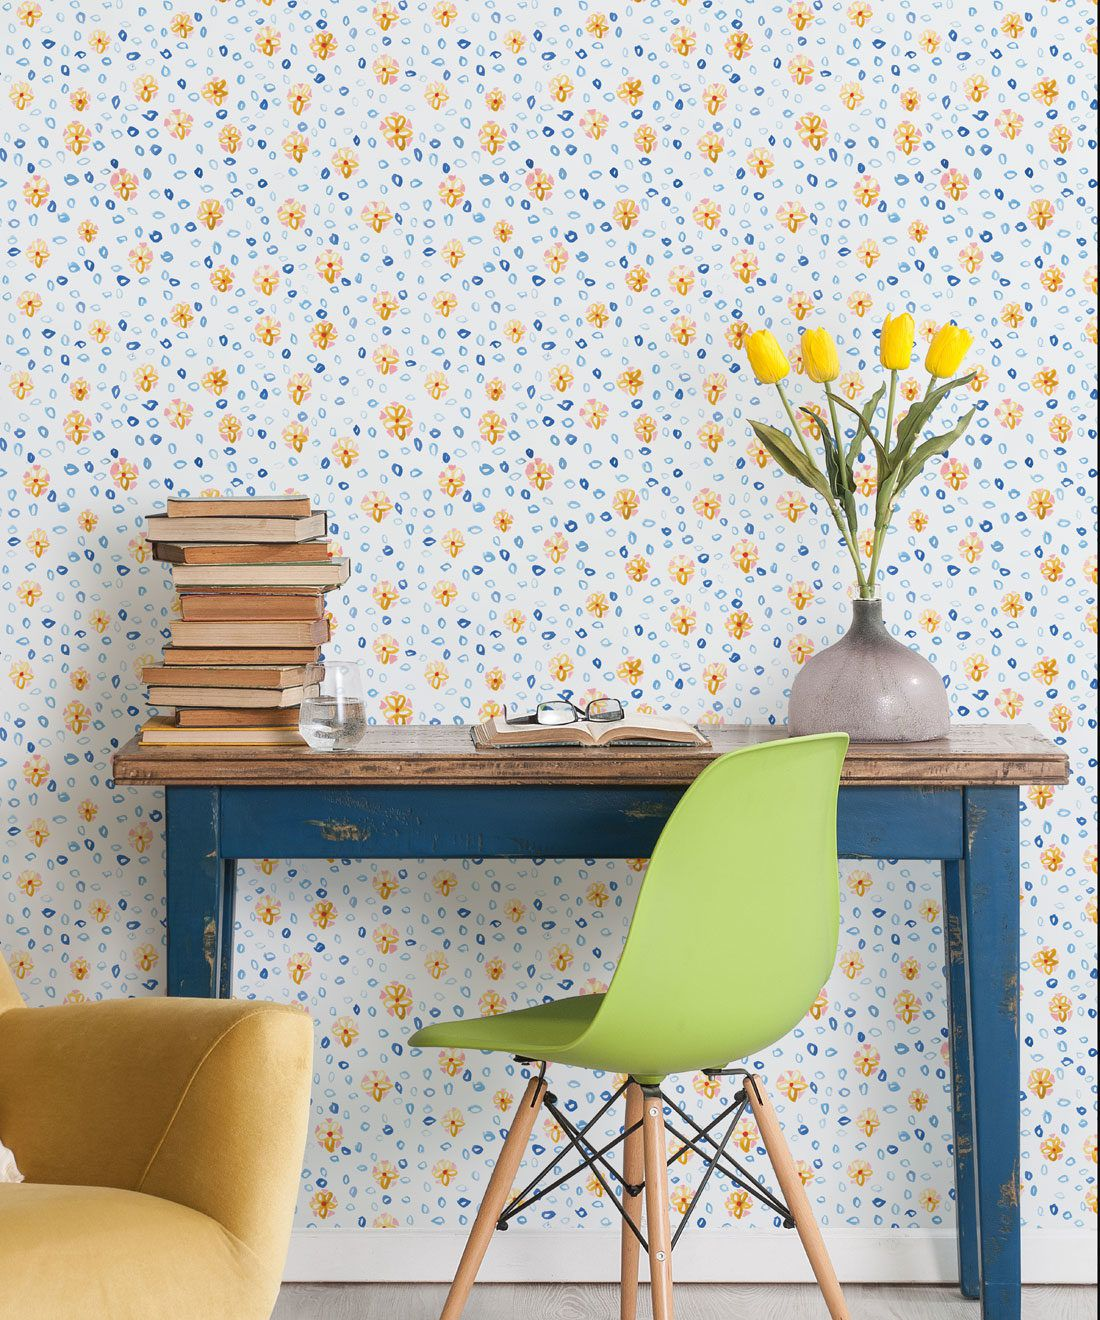 Al Hadiqa Wallpaper • Dainty Floral Design • Desk with books stacked on the left and a lime green chair in front with yellow tulips in a vase on the right side of the desk. • Milton & King Australia